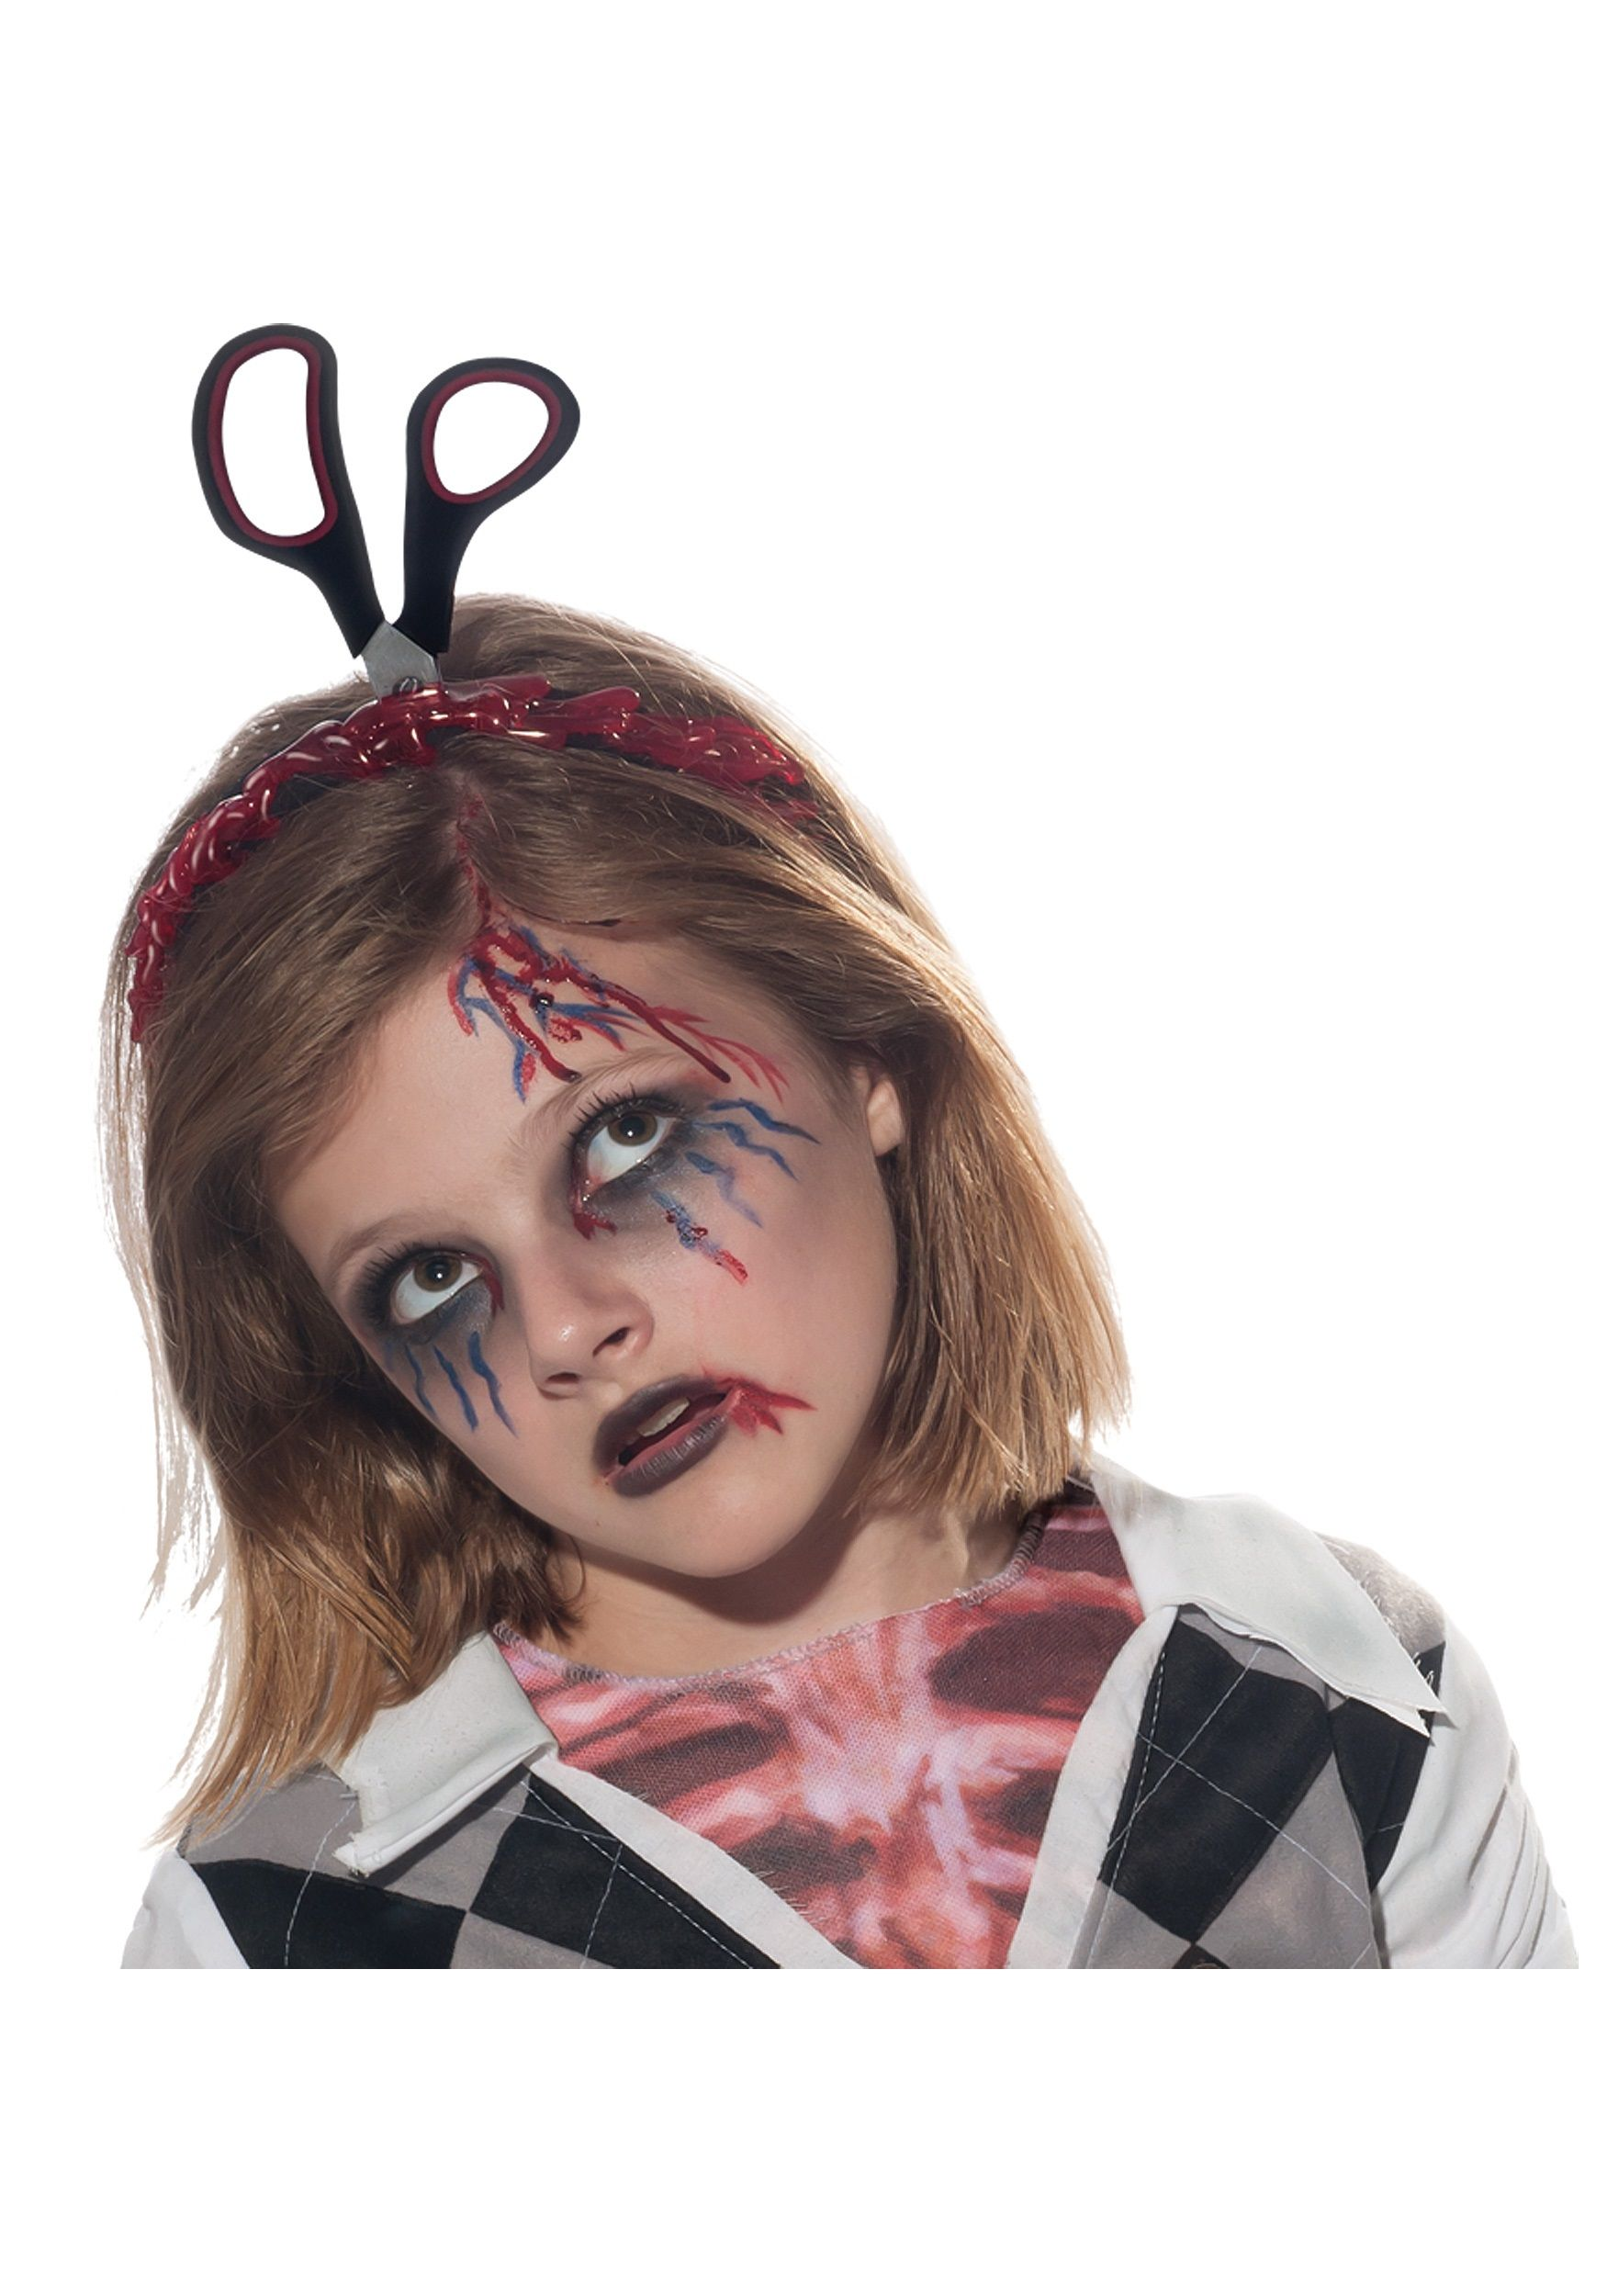 Scary Halloween Costume Ideas For Kids.Pin On Kid Fun